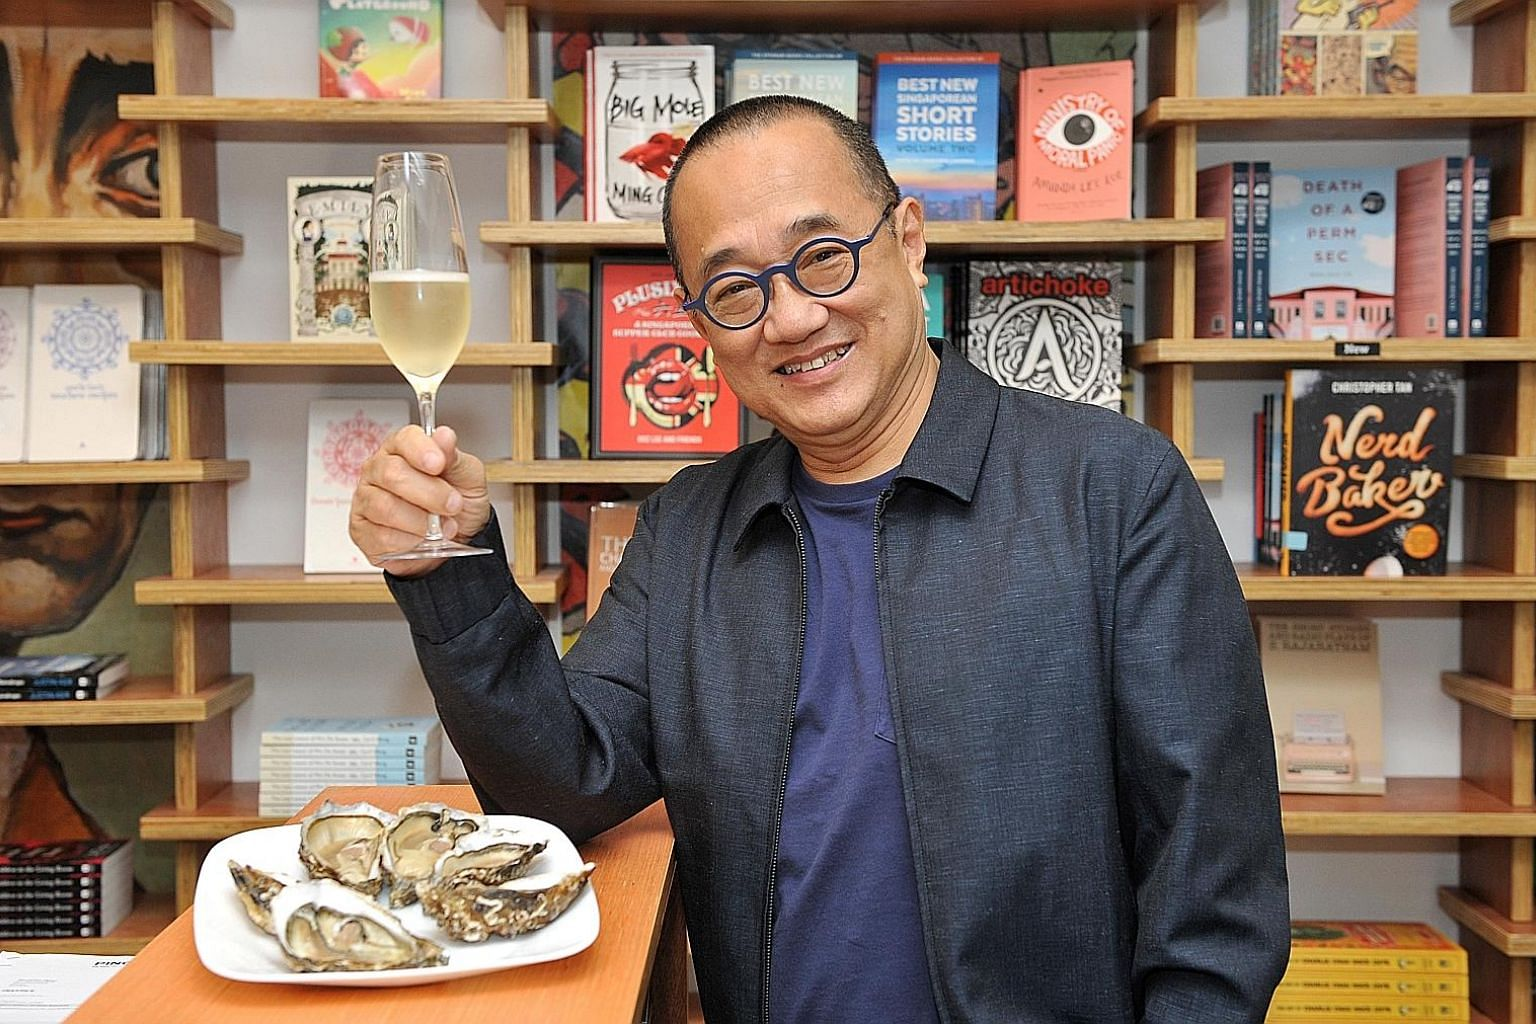 Epigram Books chief executive officer Edmund Wee started cooking after watching Jamie Oliver's The Naked Chef on television.